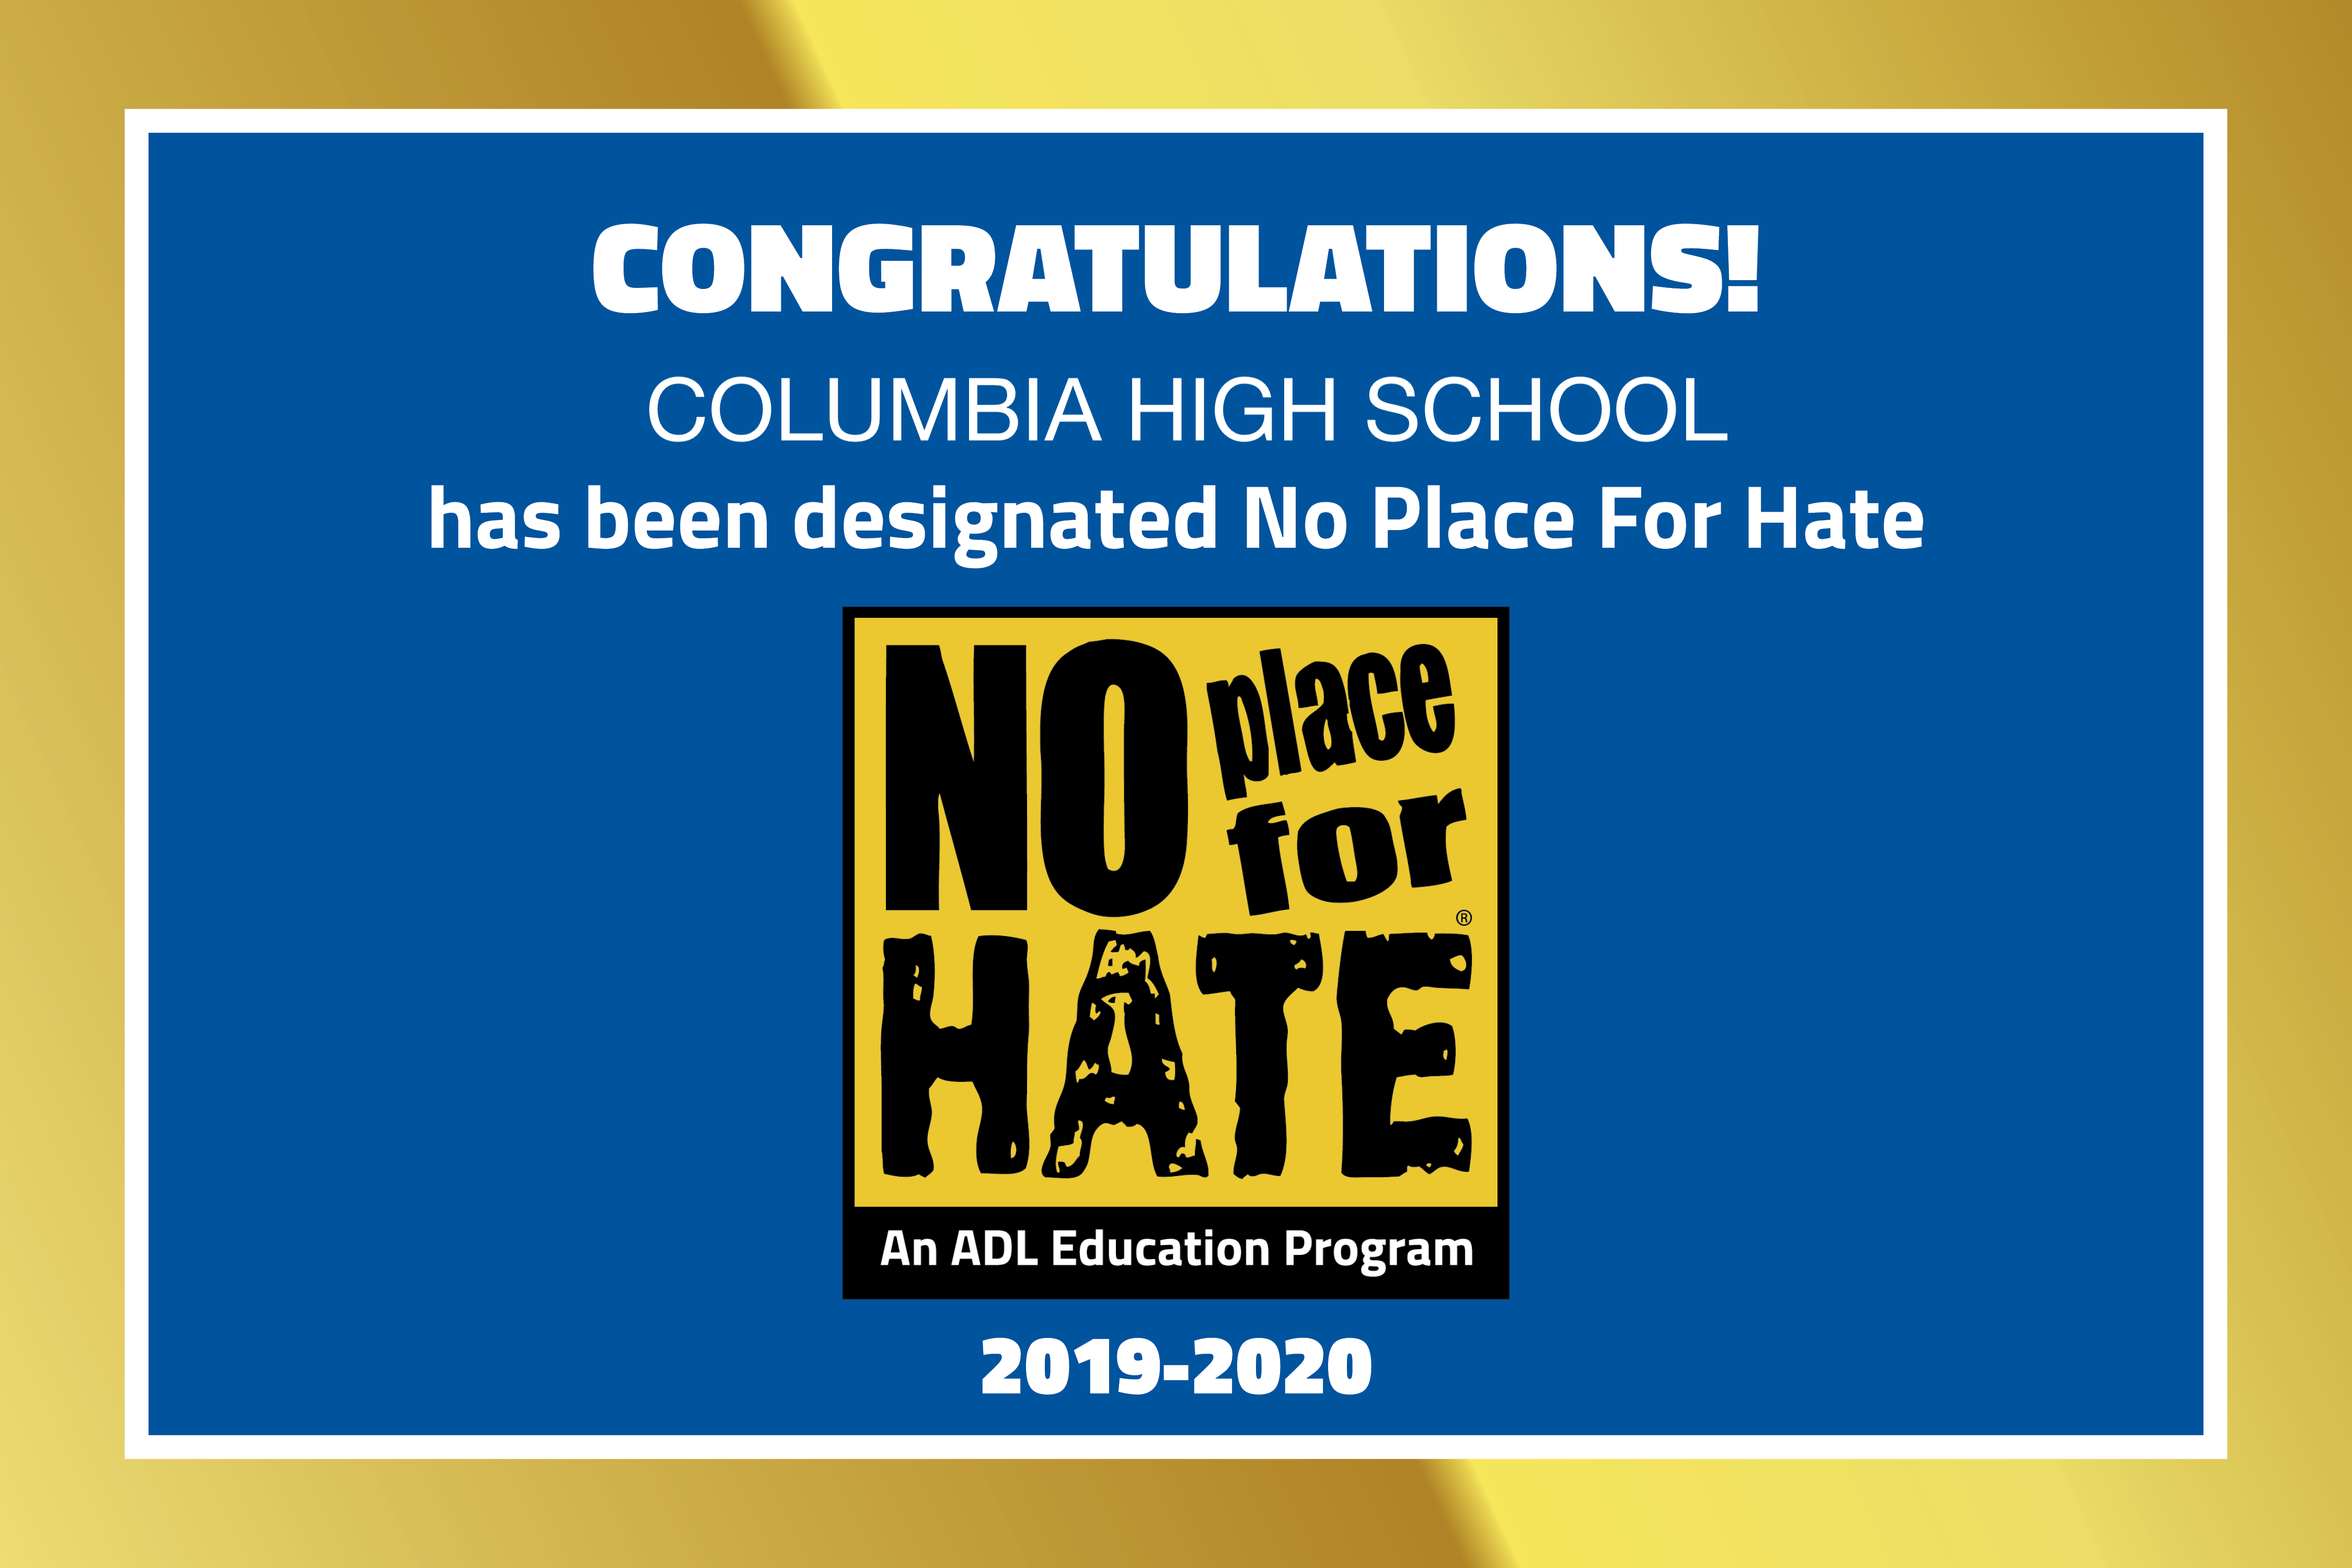 CHS No Place for Hate image